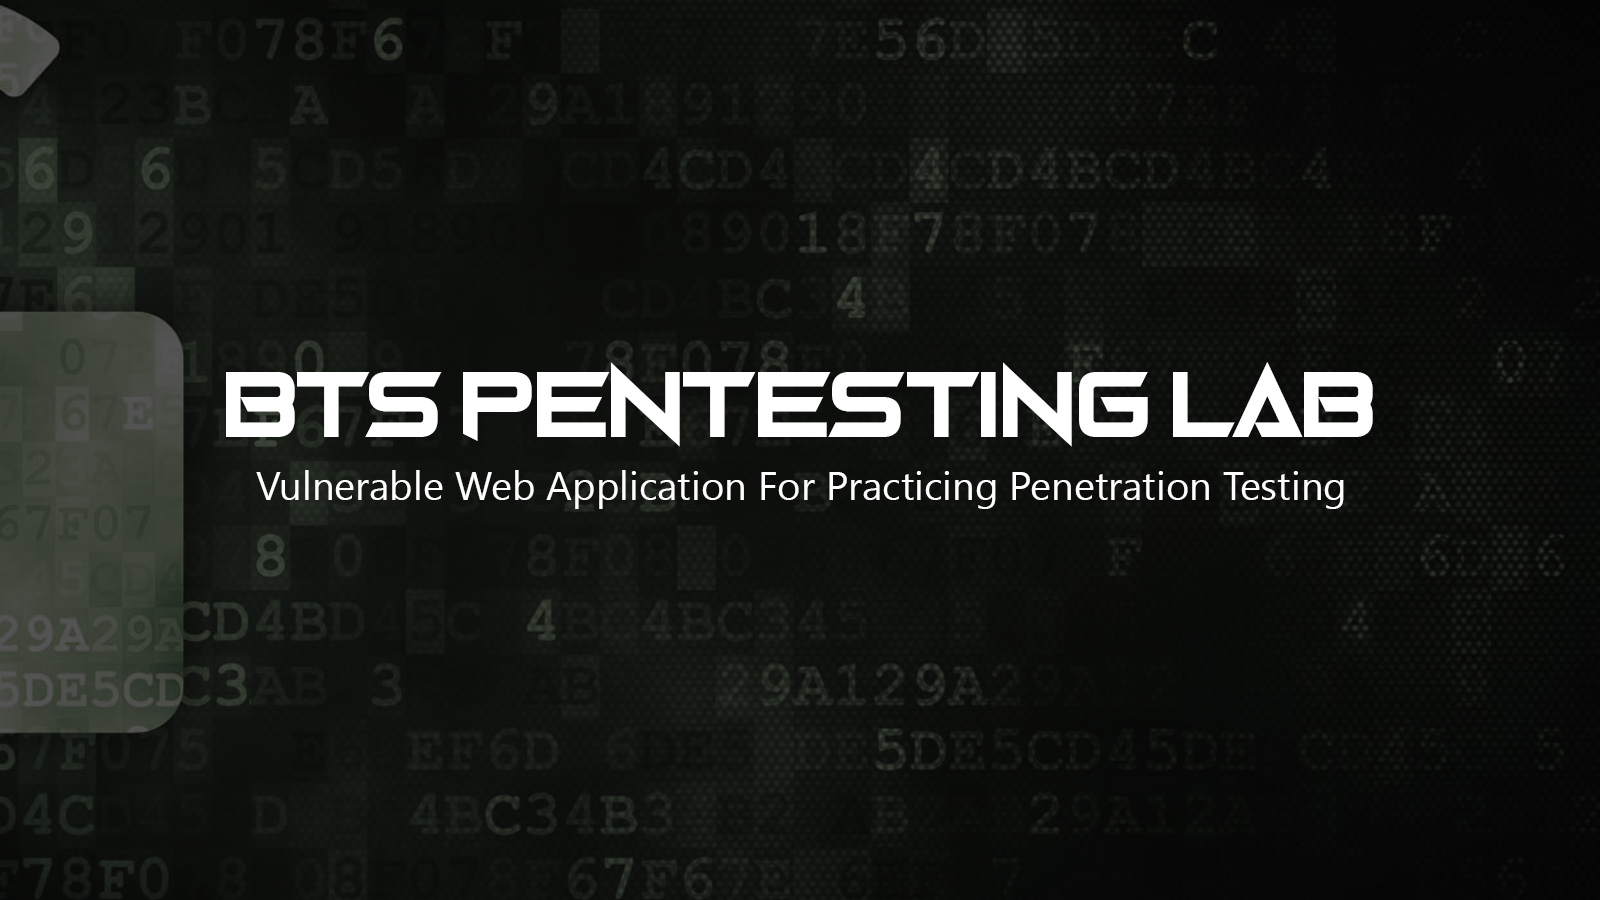 BTS PenTesting Lab - Vulnerable Web Application